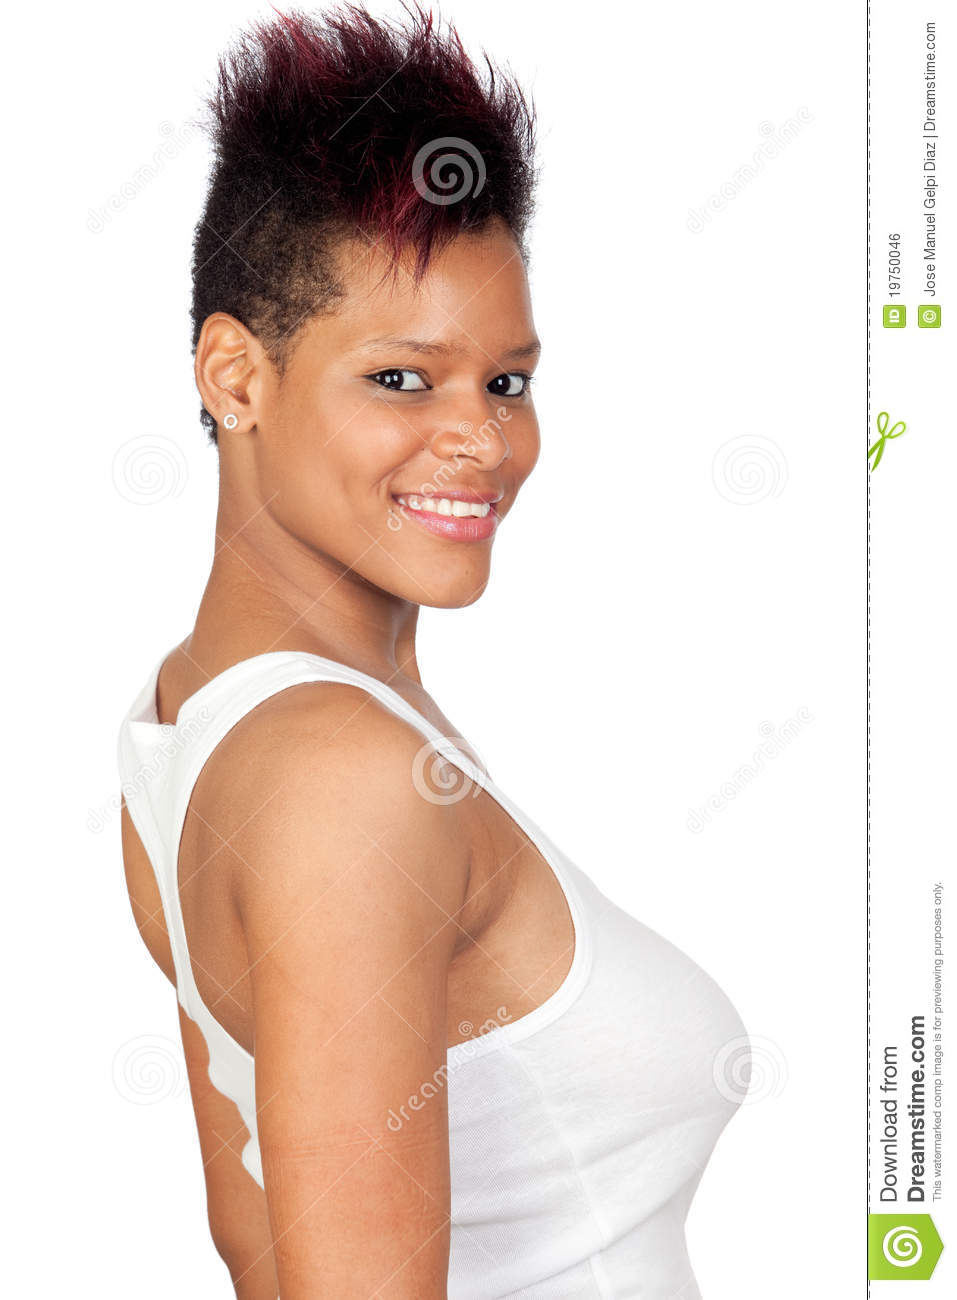 Exotic african girl stock photo. Image of breast, ethnic - 19750046